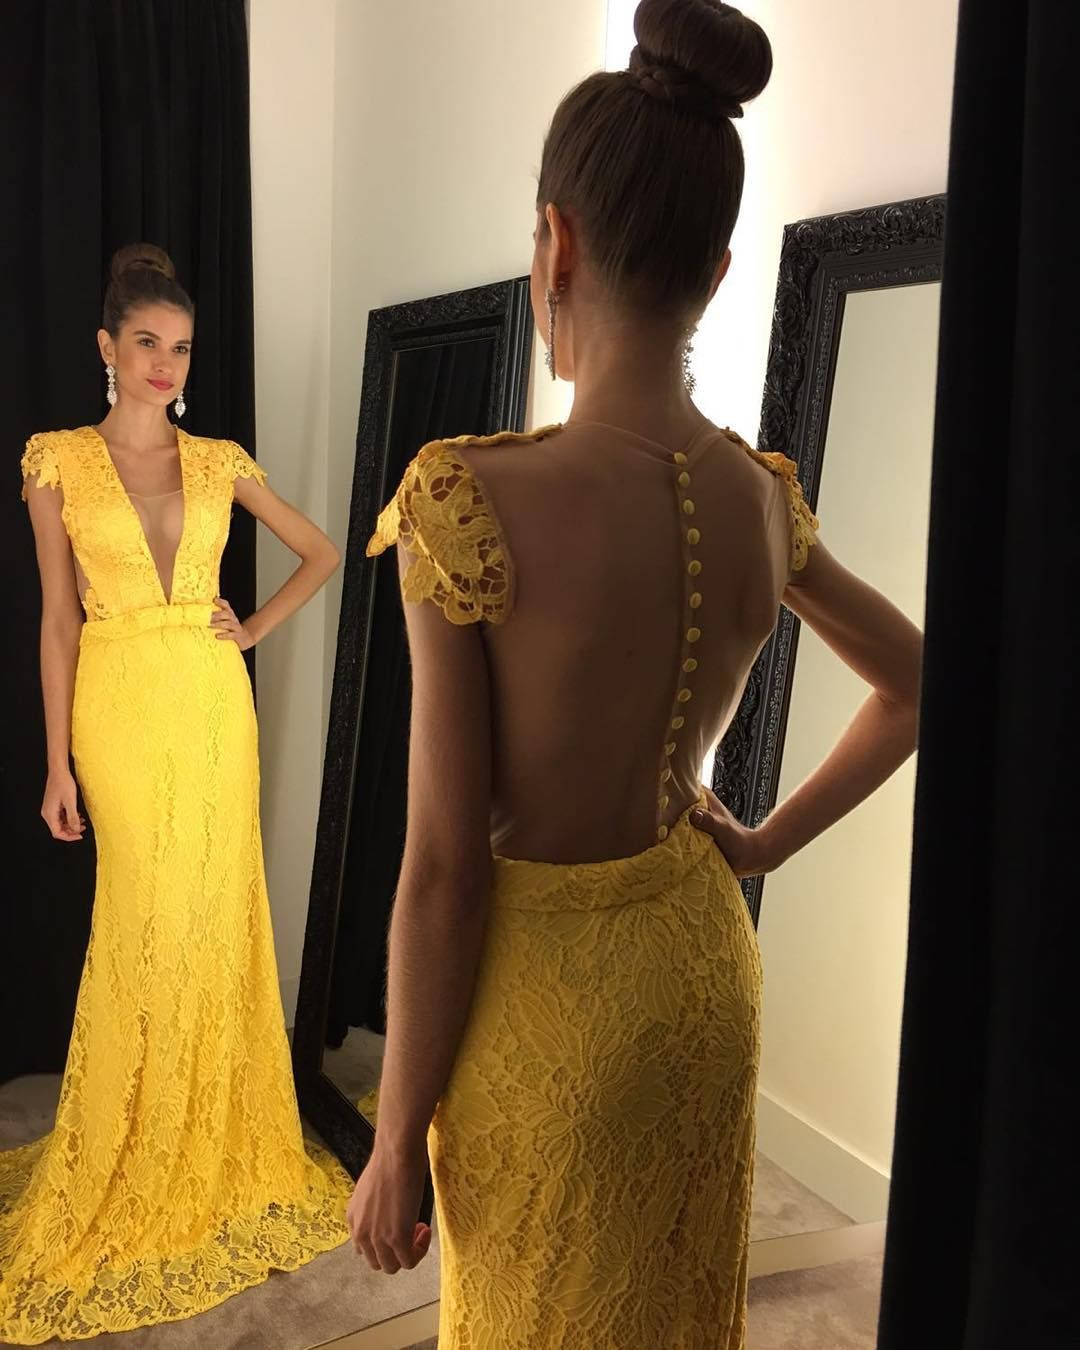 Pin by tenishea turner on love my sgrho pinterest prom dresses